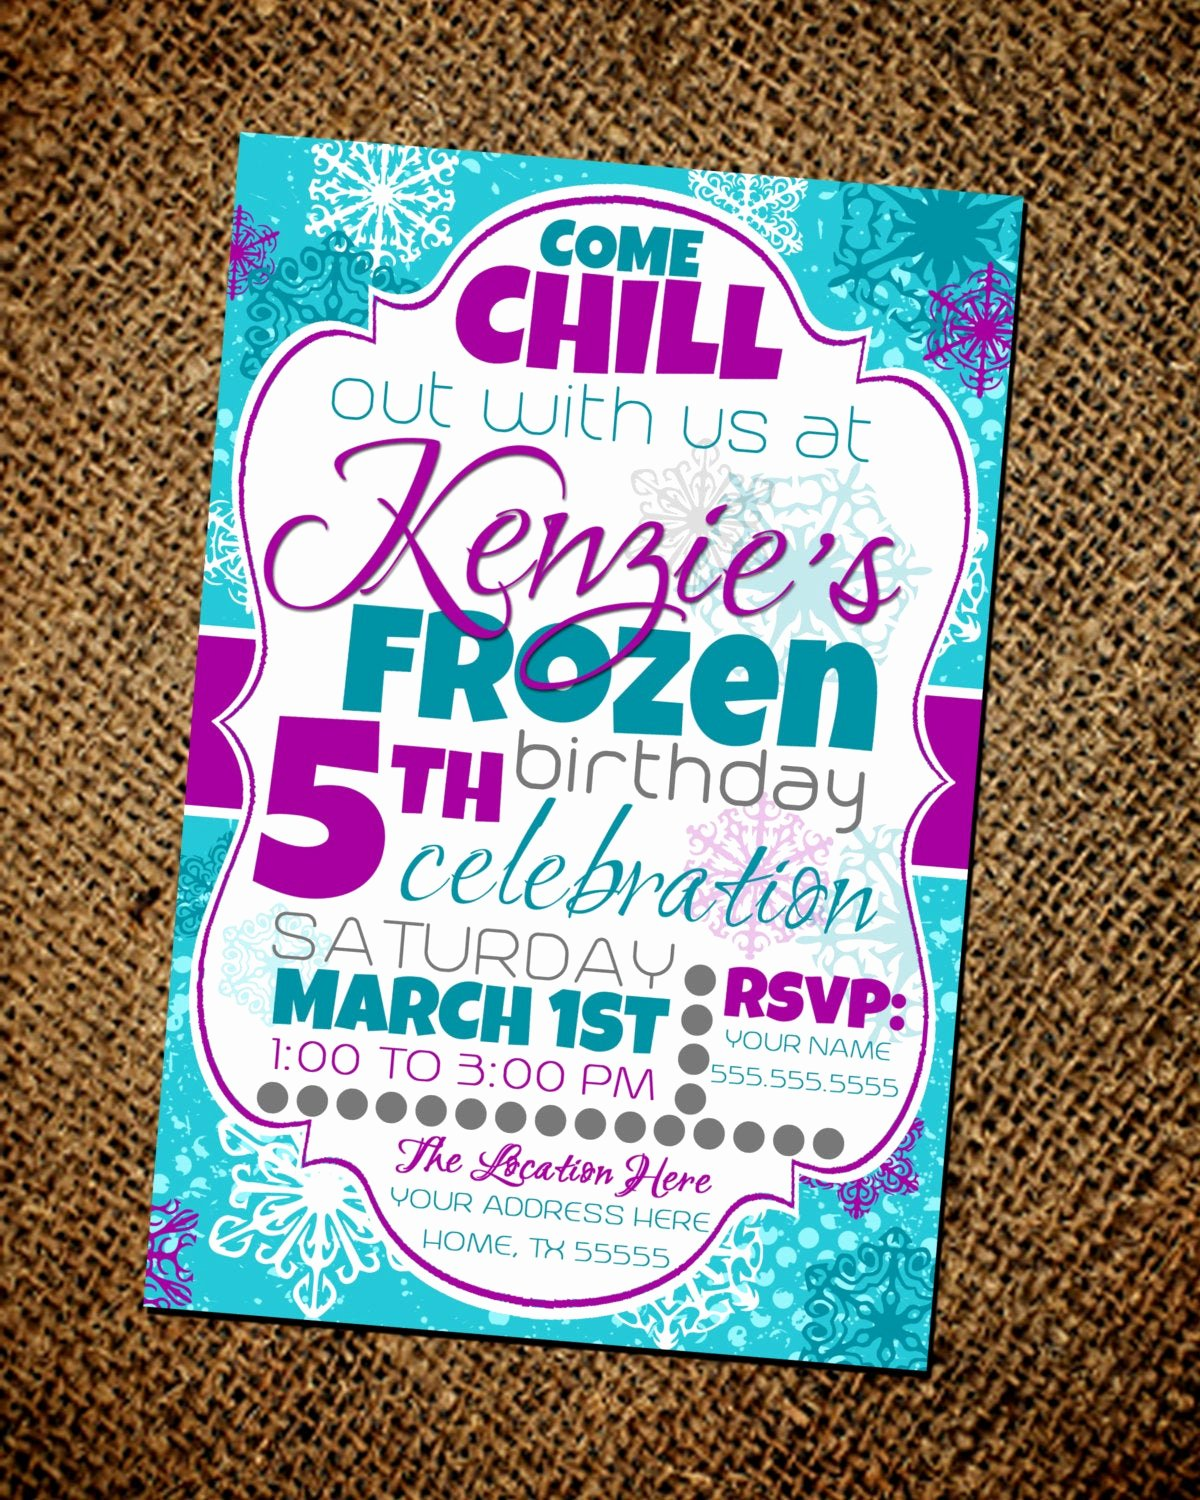 Frozen Birthday Invitations Wording Luxury Frozen Birthday Party Invitation by Miaraecollections On Etsy